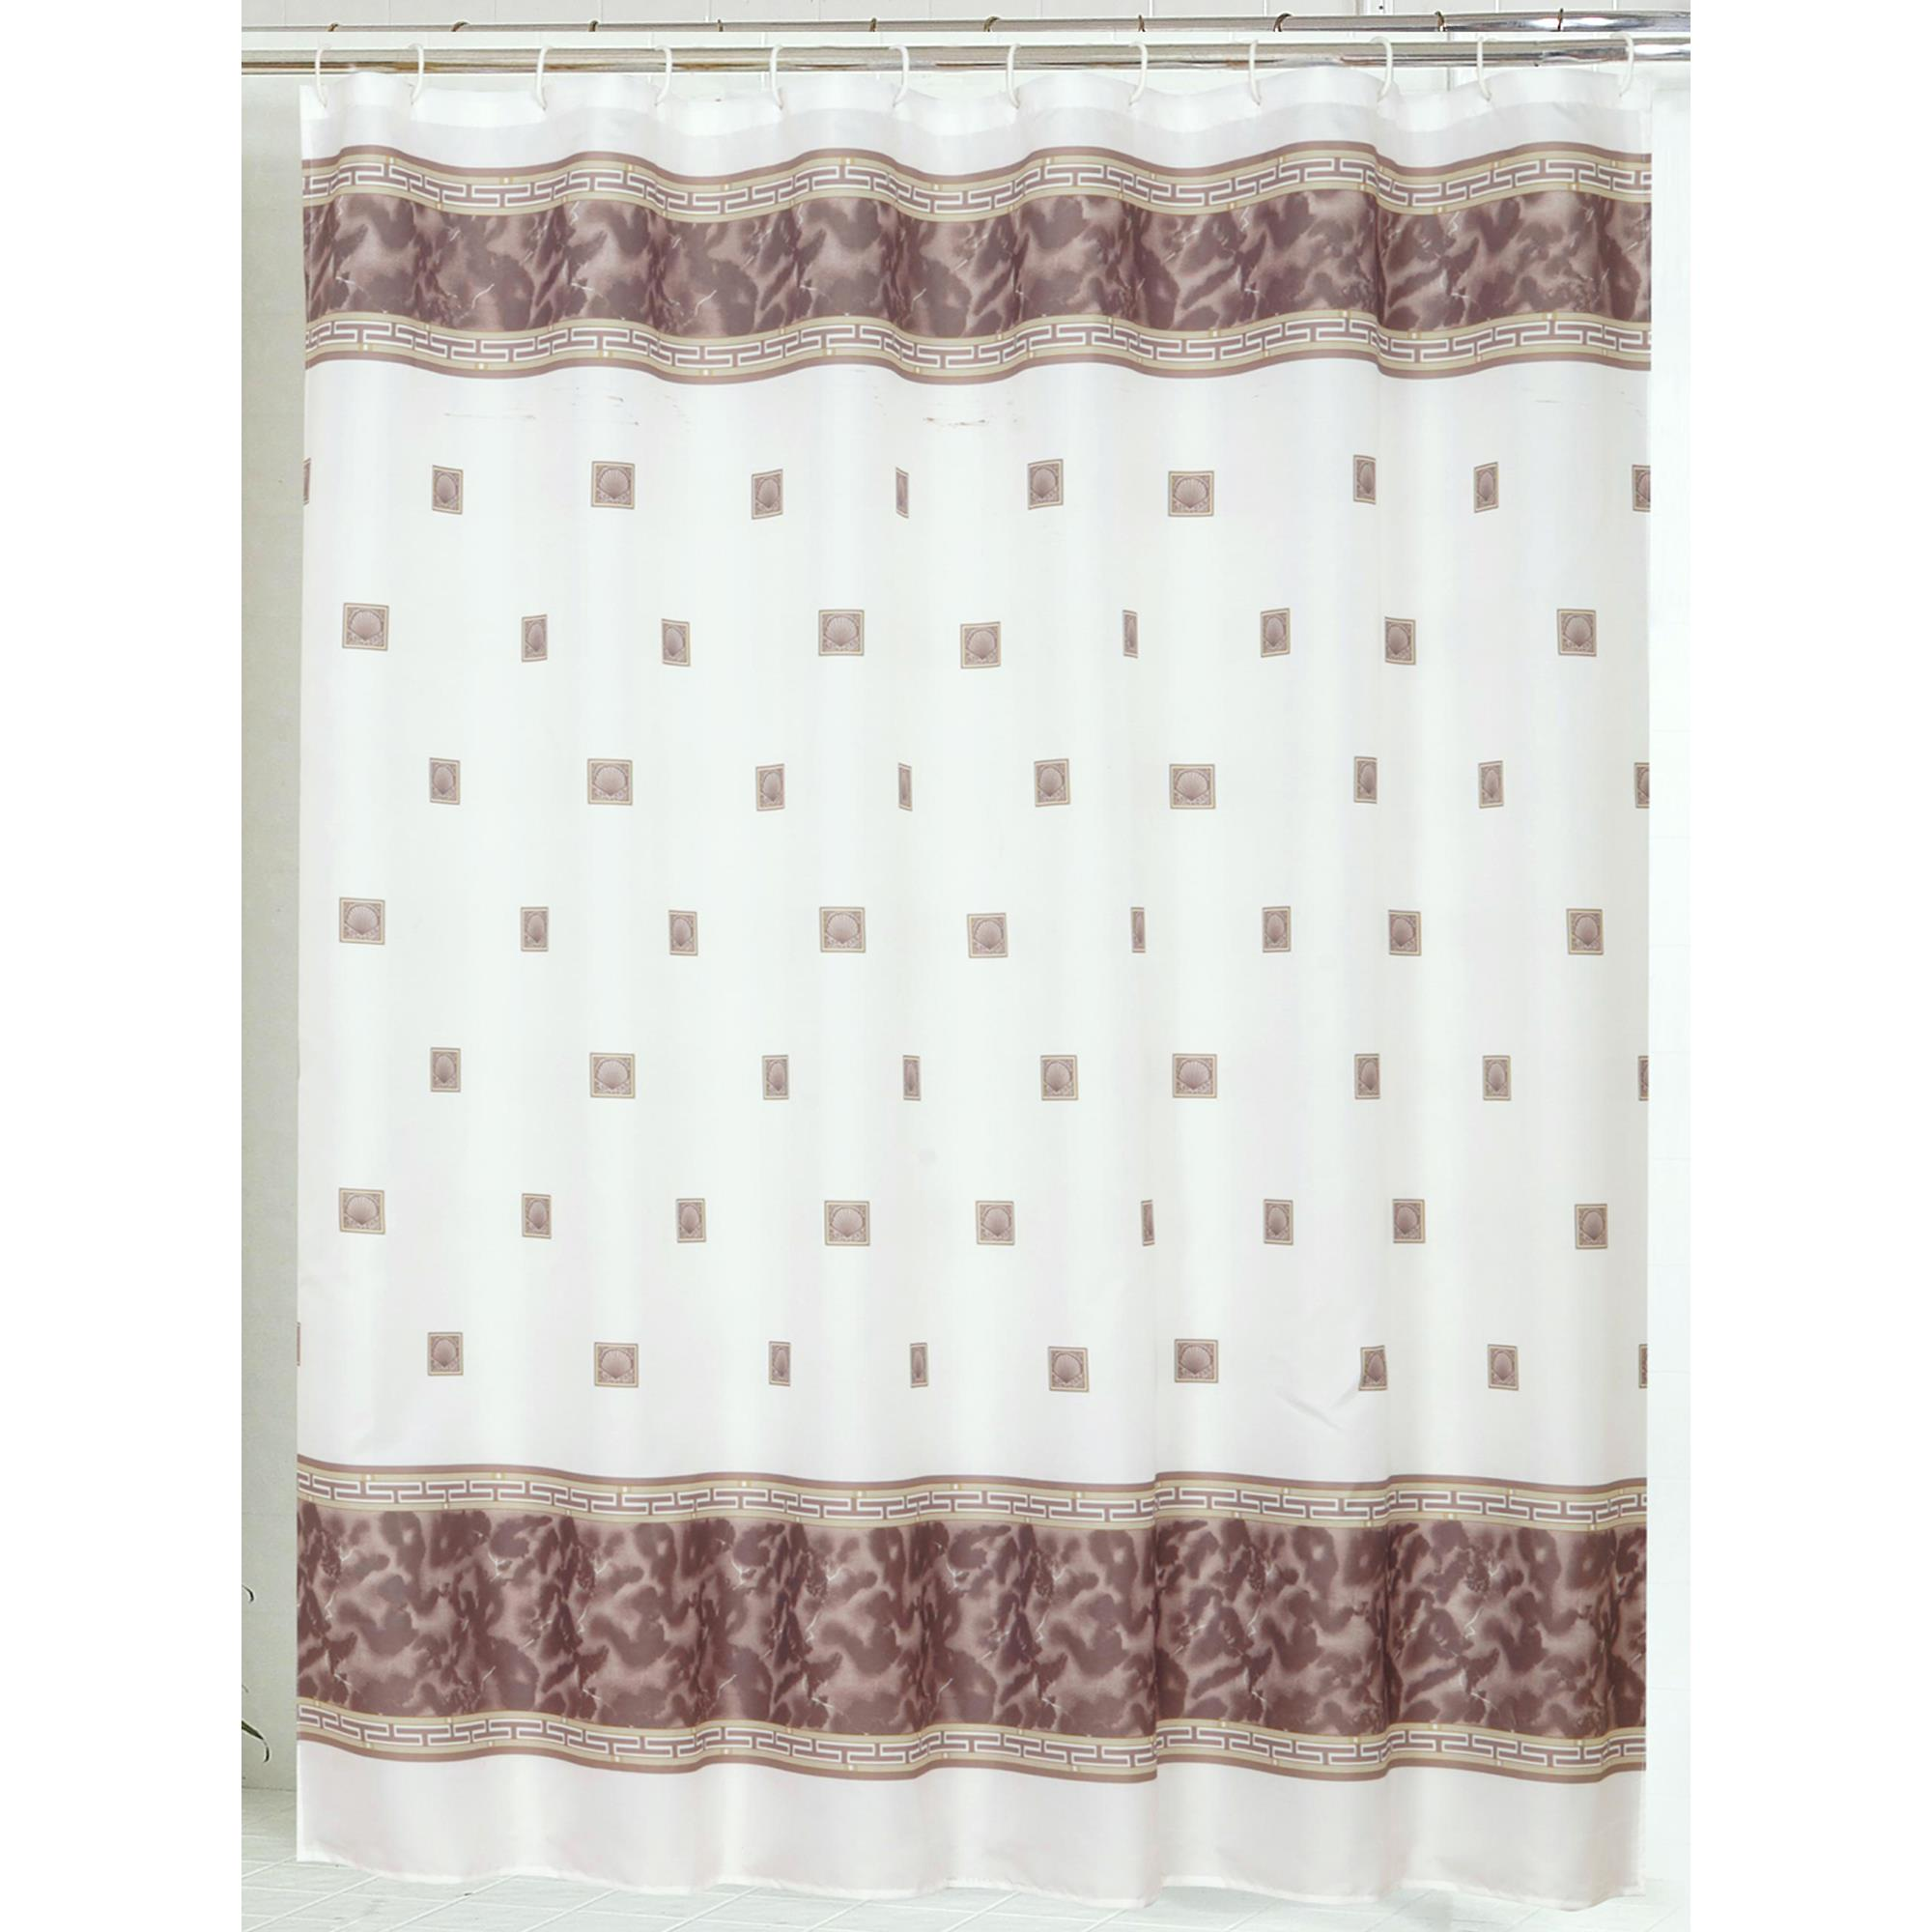 Details About Carnation Home Windsor Fabric Shower Curtain In 70x72 Brown